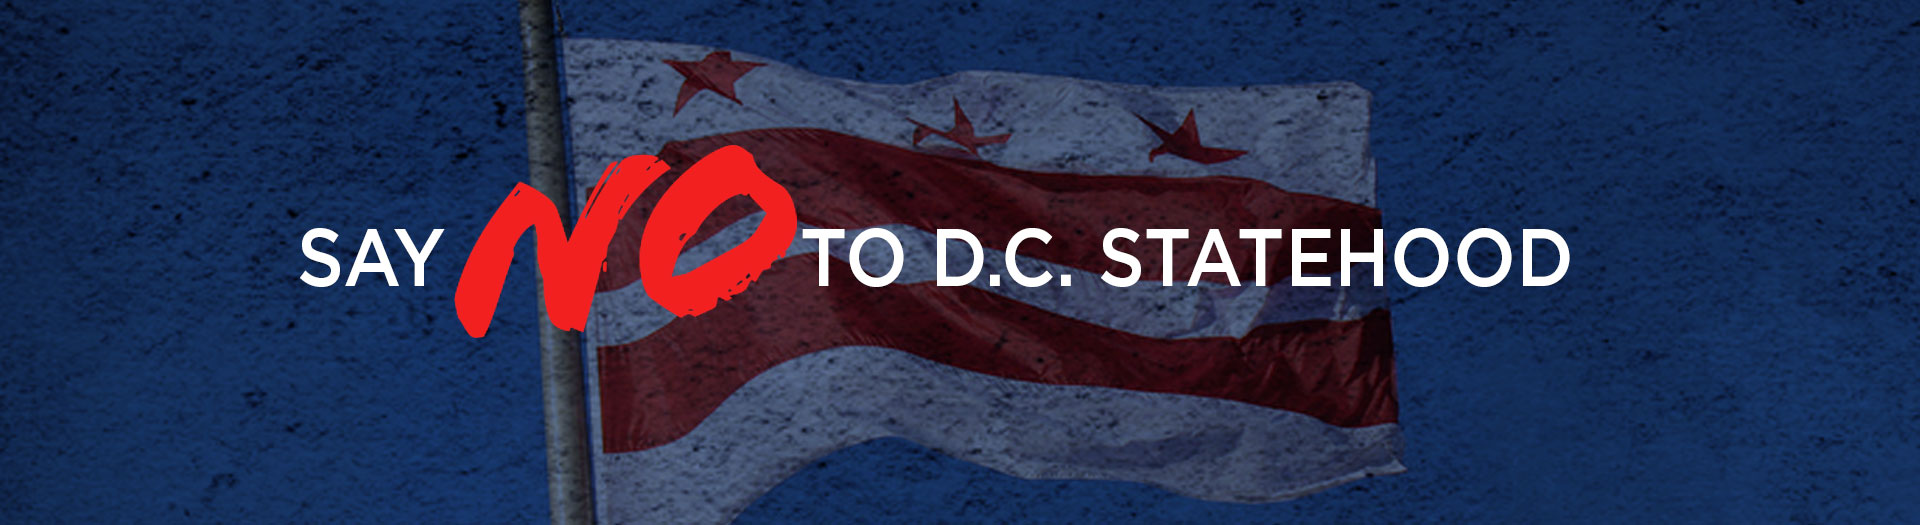 Say no to DC statehood